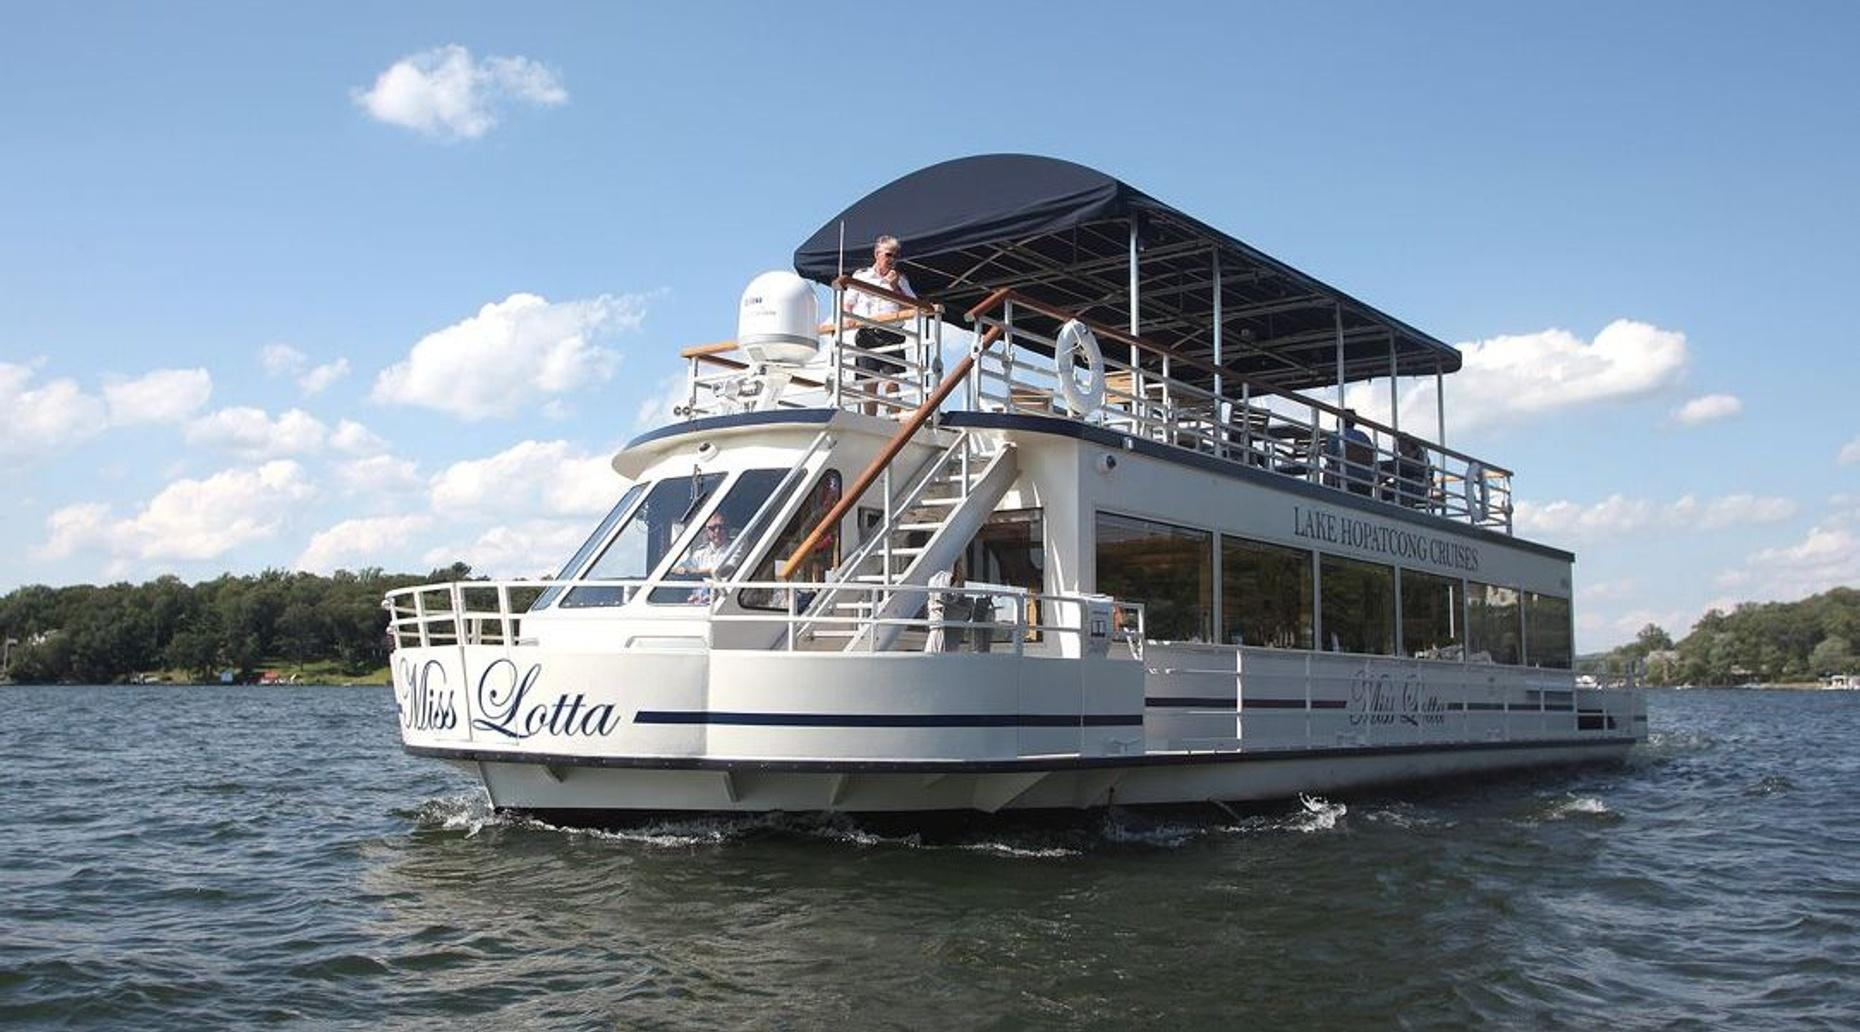 Cocktail Cruise on Lake Hopatcong